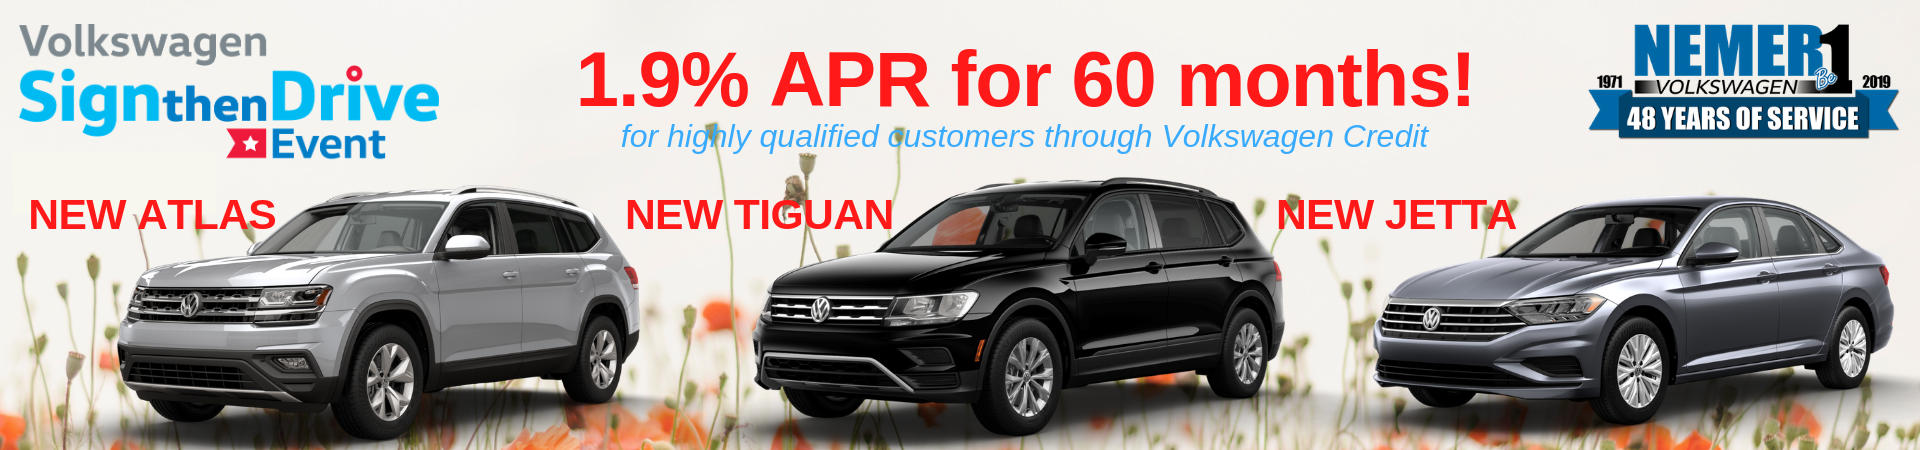 Sign Then Drive May APR Offer VW